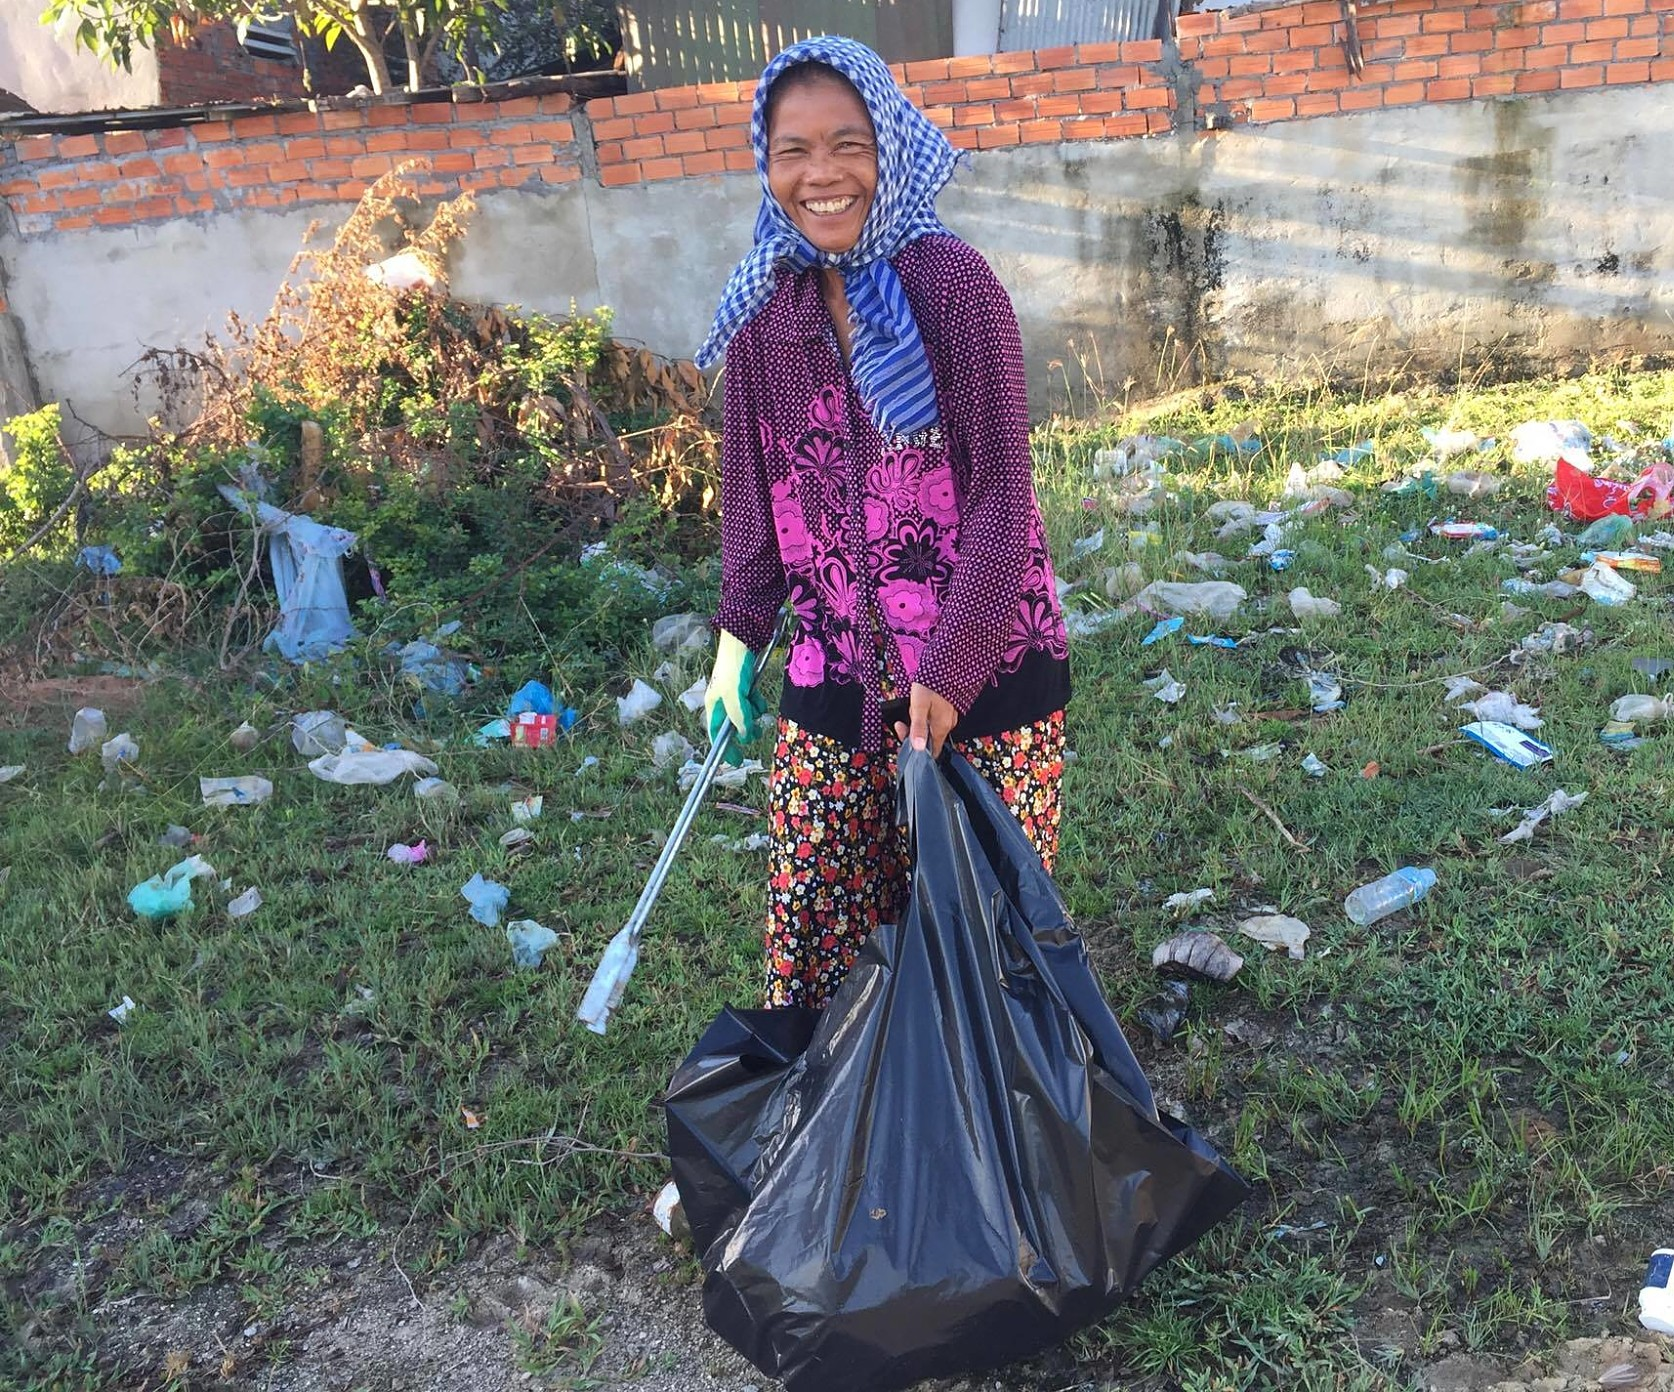 Sok Tho helping create environmental change in Cambodia